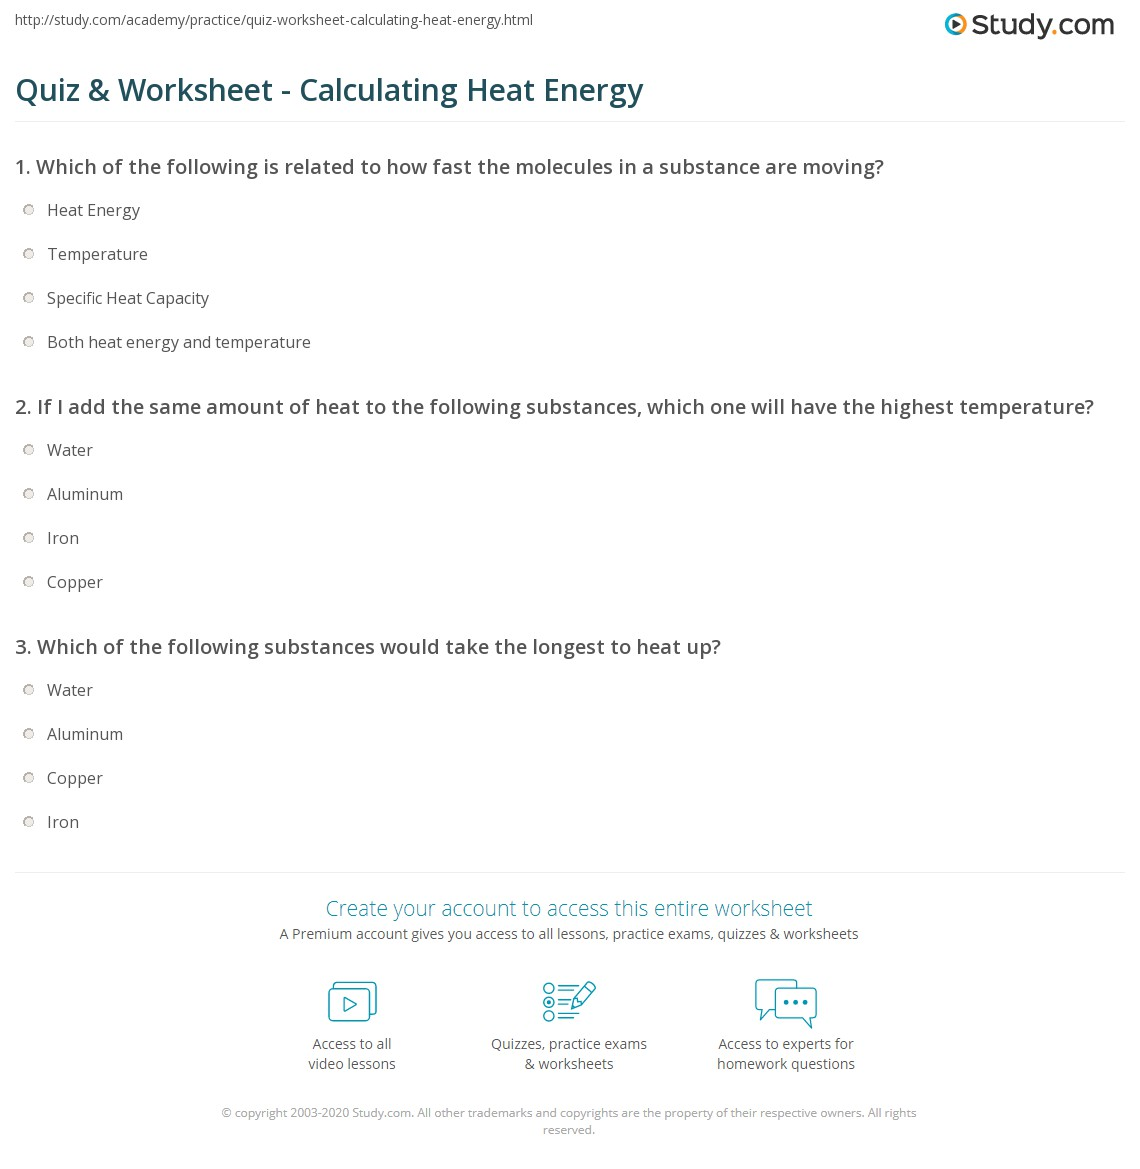 Heat Energy Worksheet 1 Calculations Involving Specific